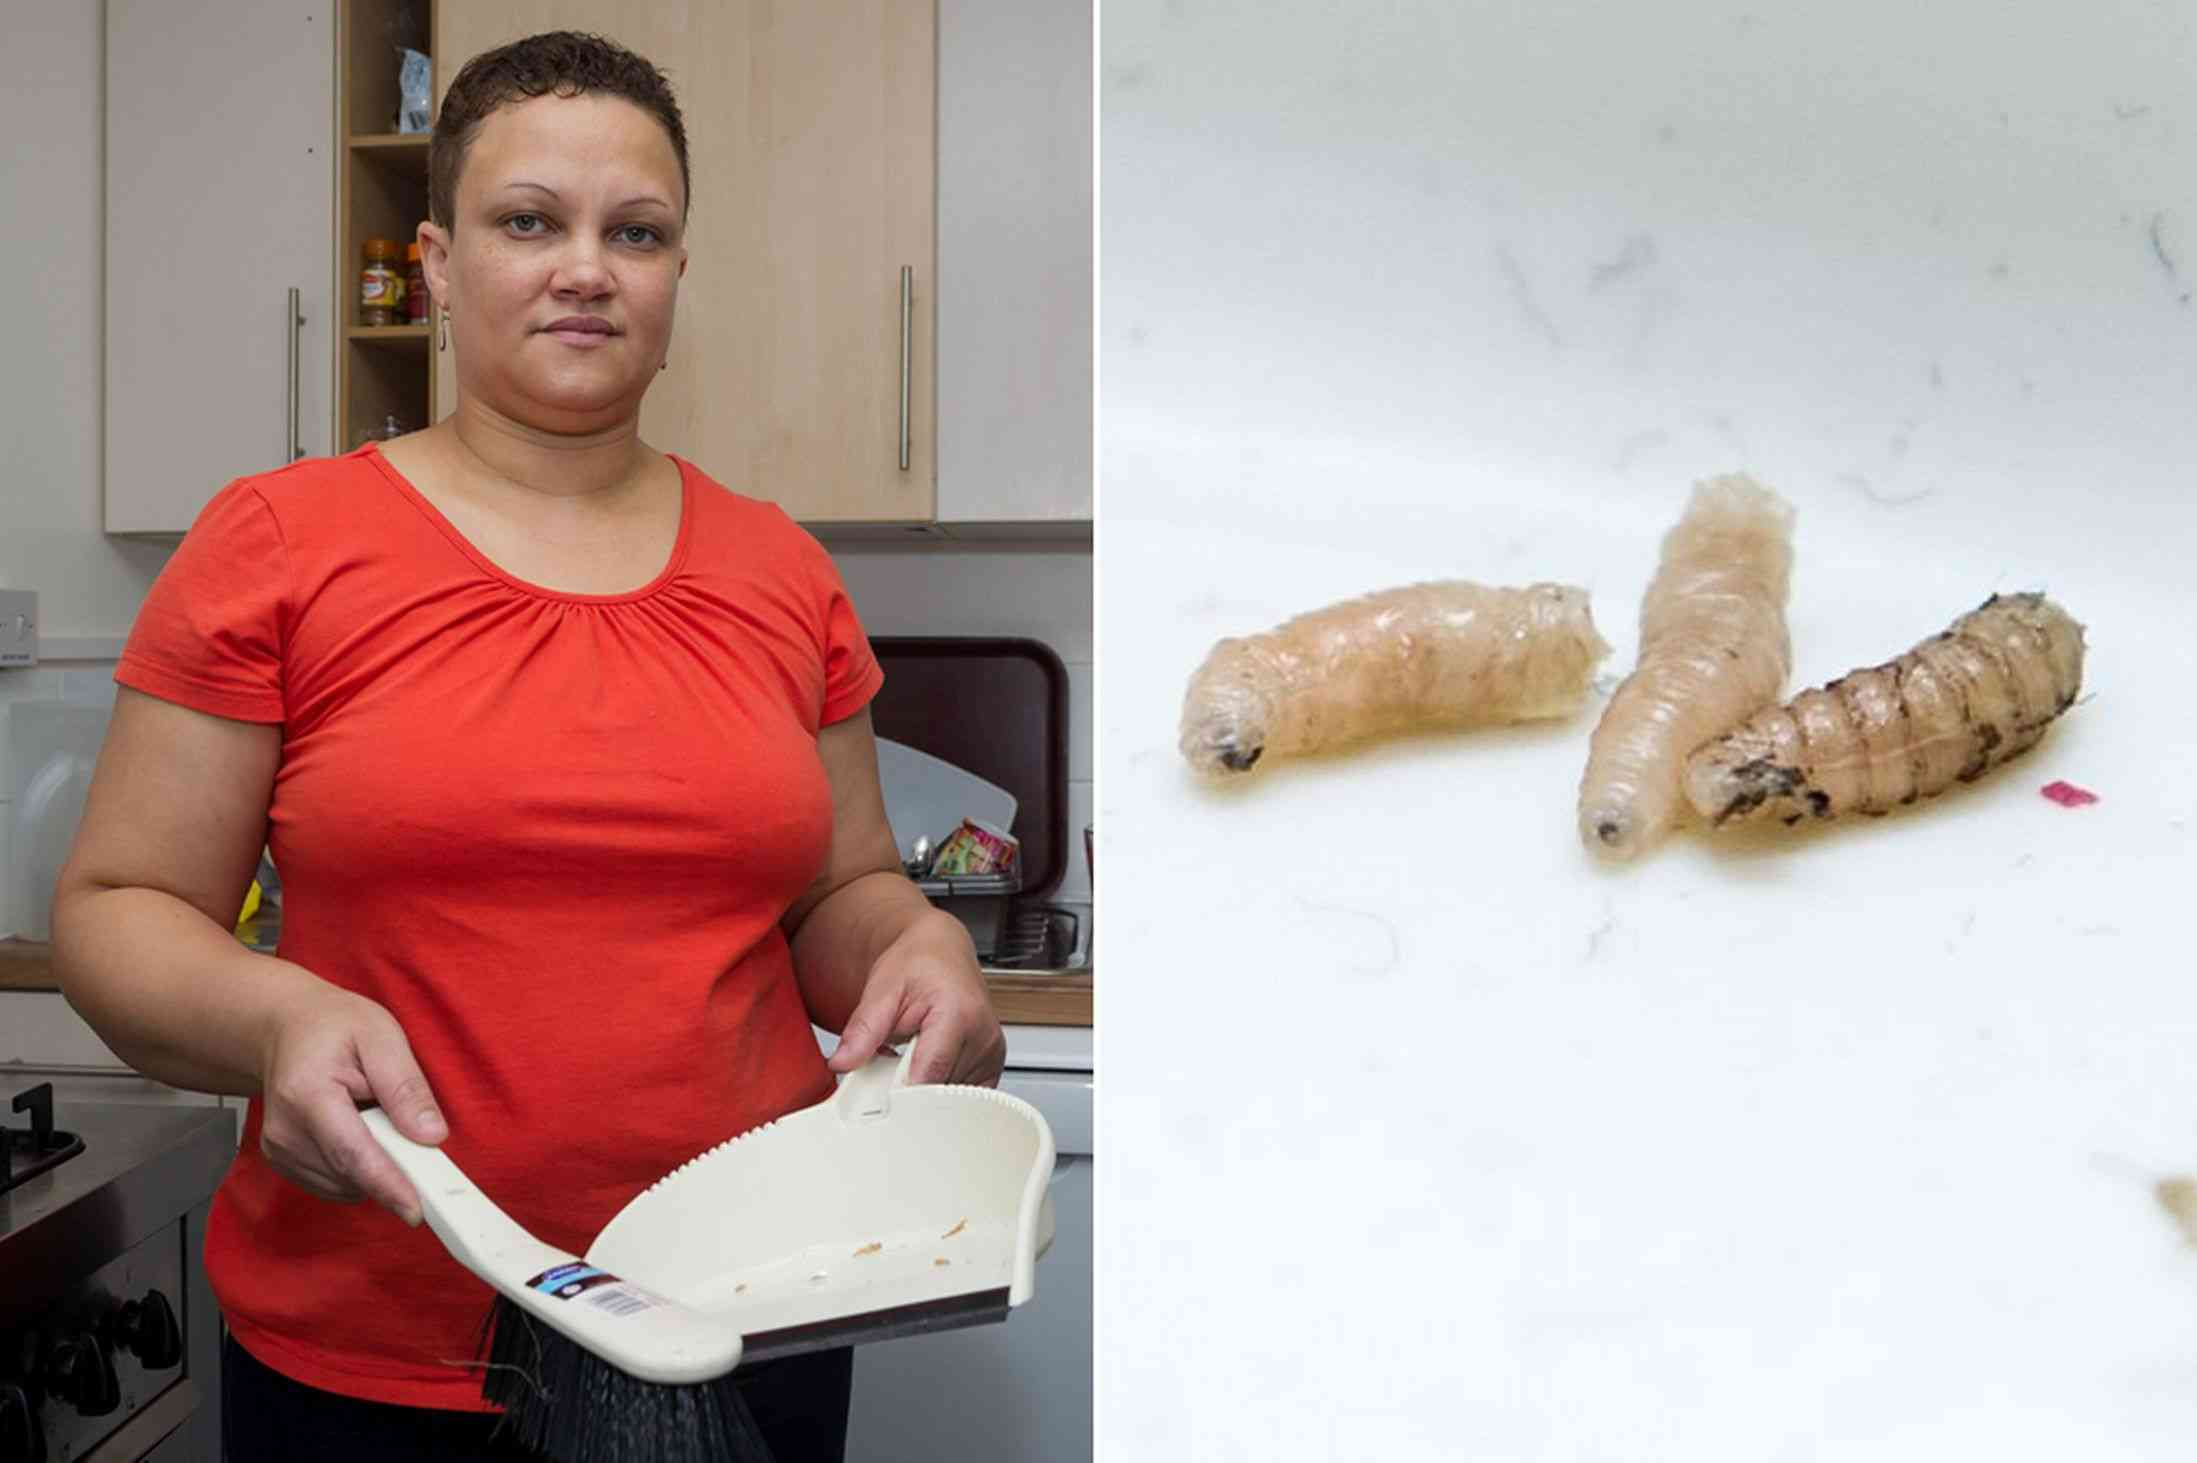 Mum's disgust as she finds maggots in her kitchen came from CORPSE rotting in upstairs flat - Mirror Online